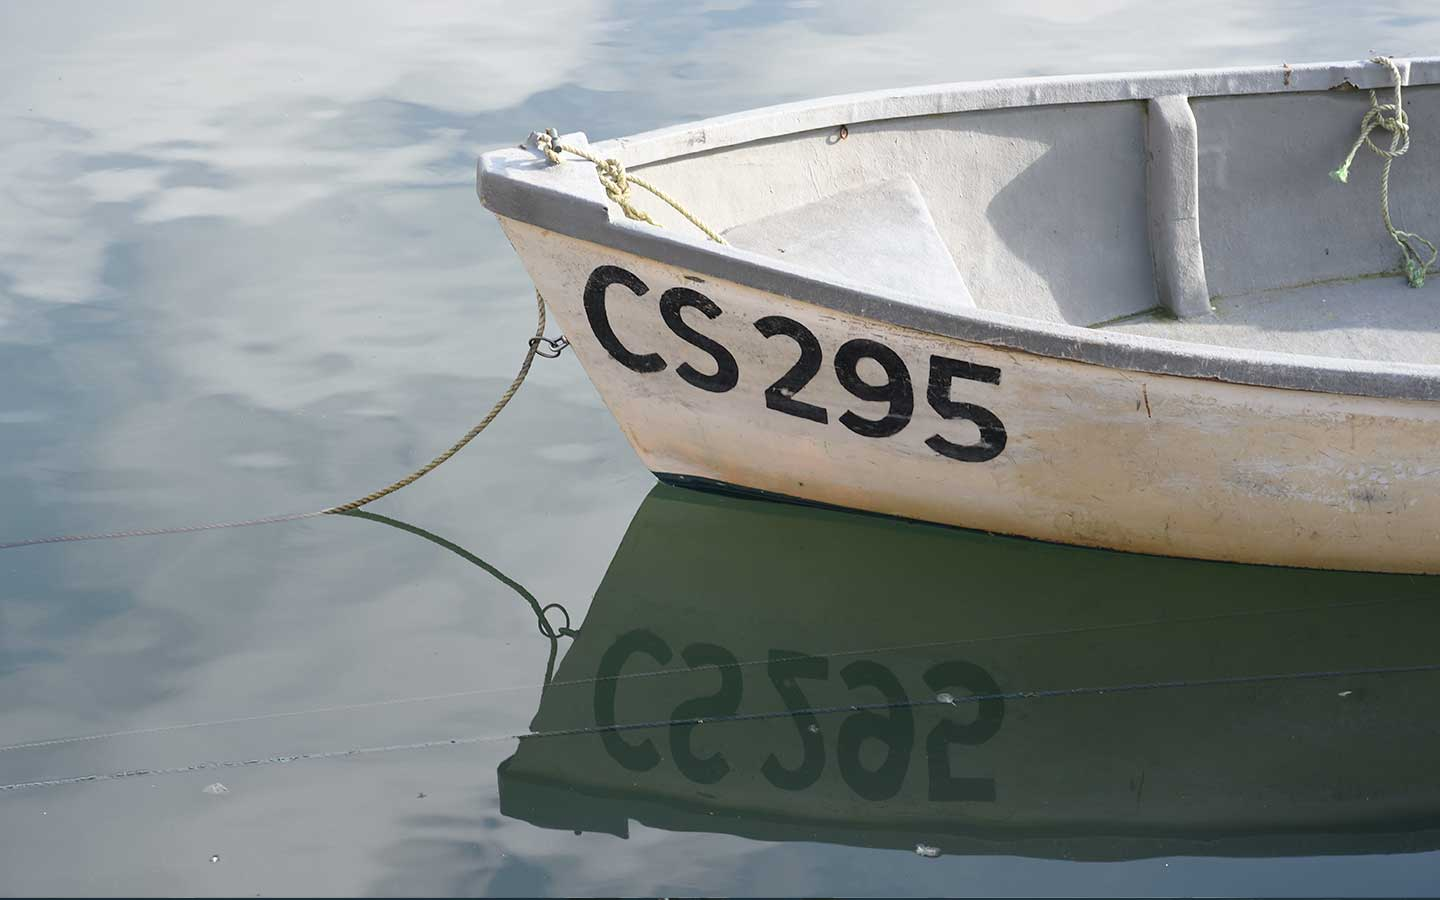 boat with numbers reflecting in the water at mevagissey